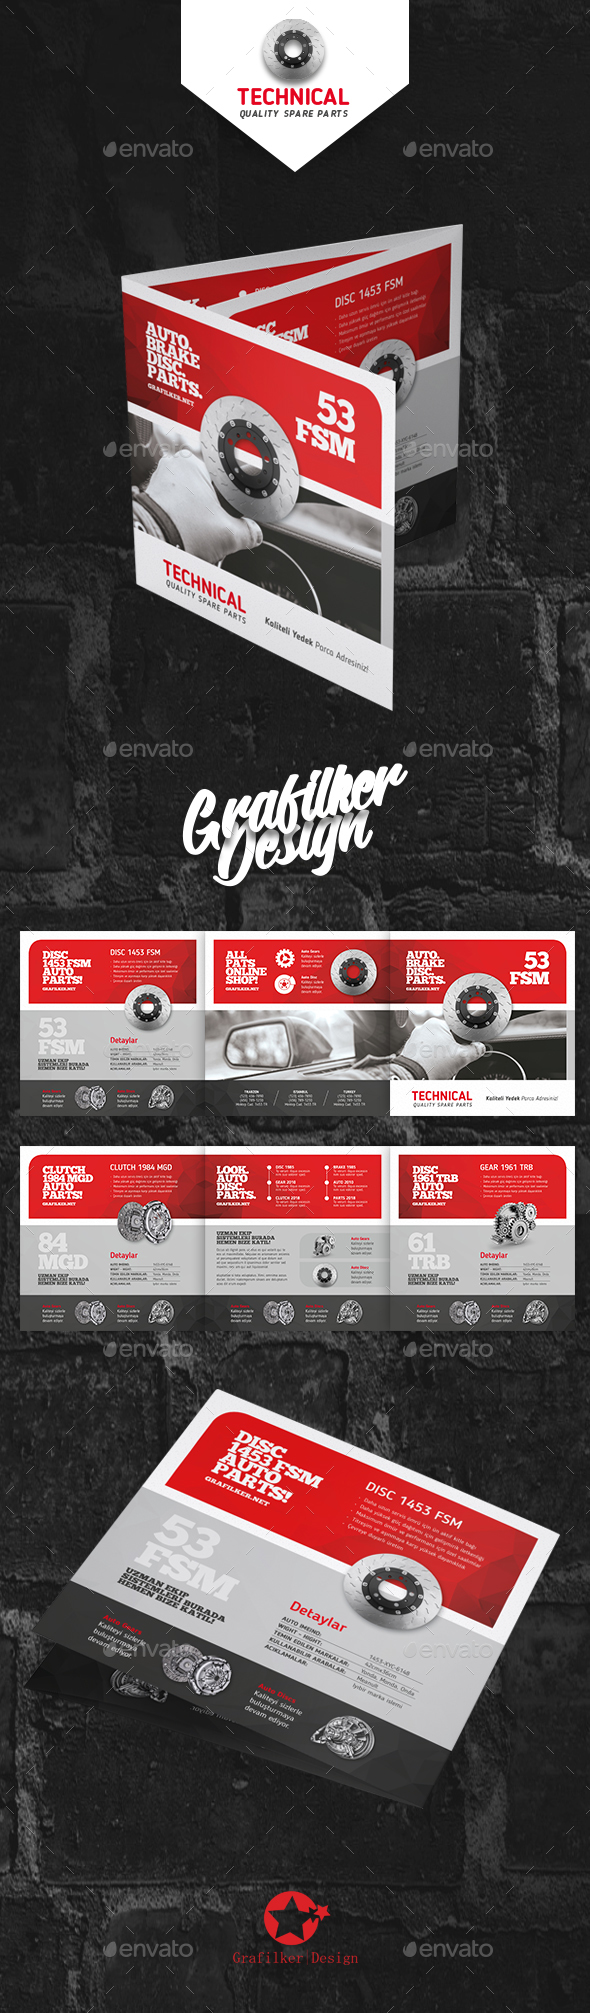 Technical Data Square Brochure Templates - Corporate Brochures